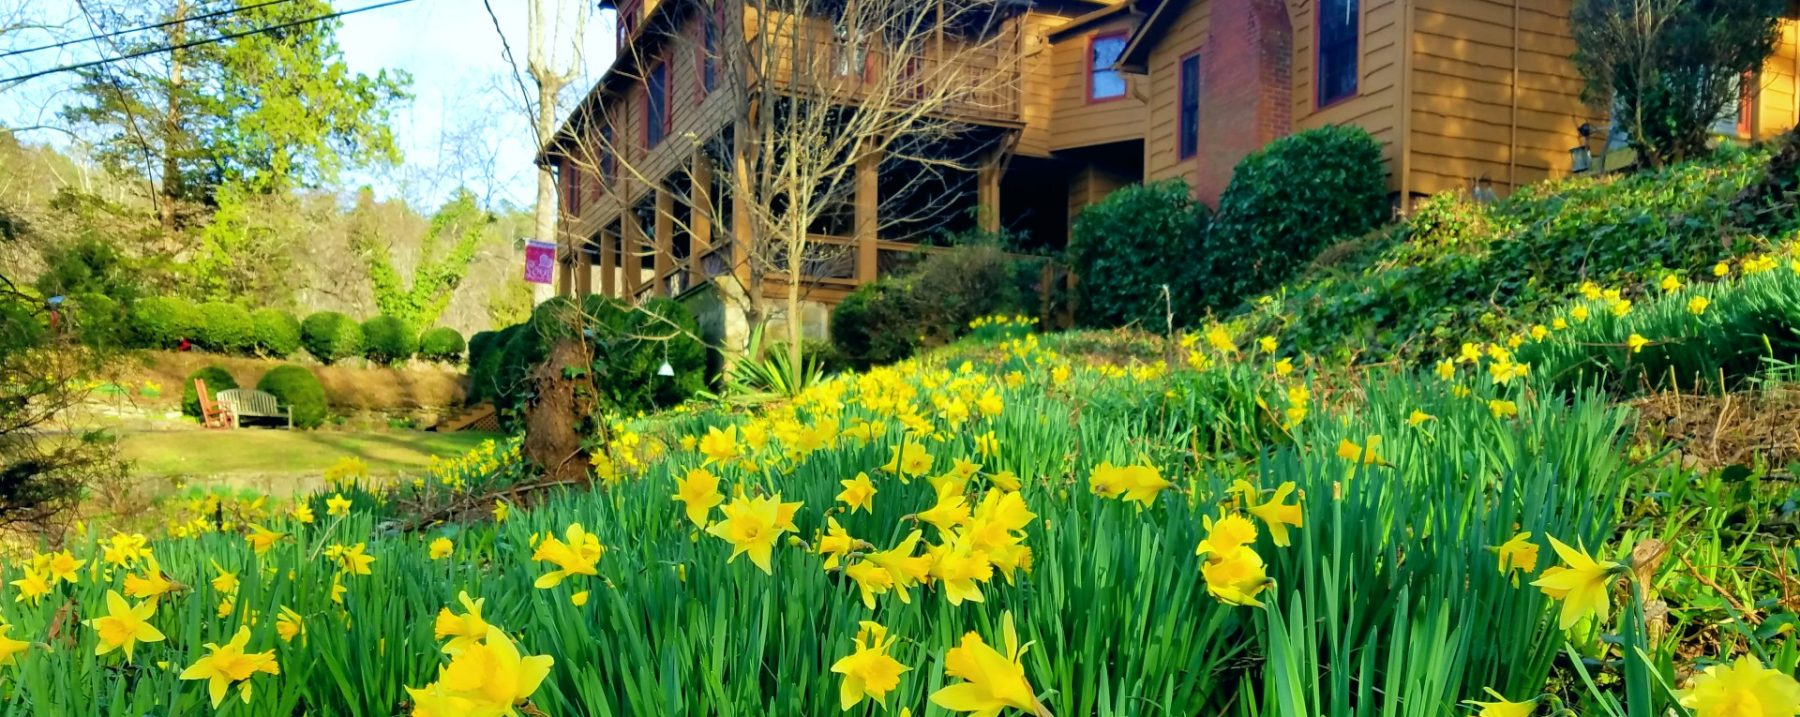 Spring Photo of Beechwood Inn with Spring Flowers in Bloom